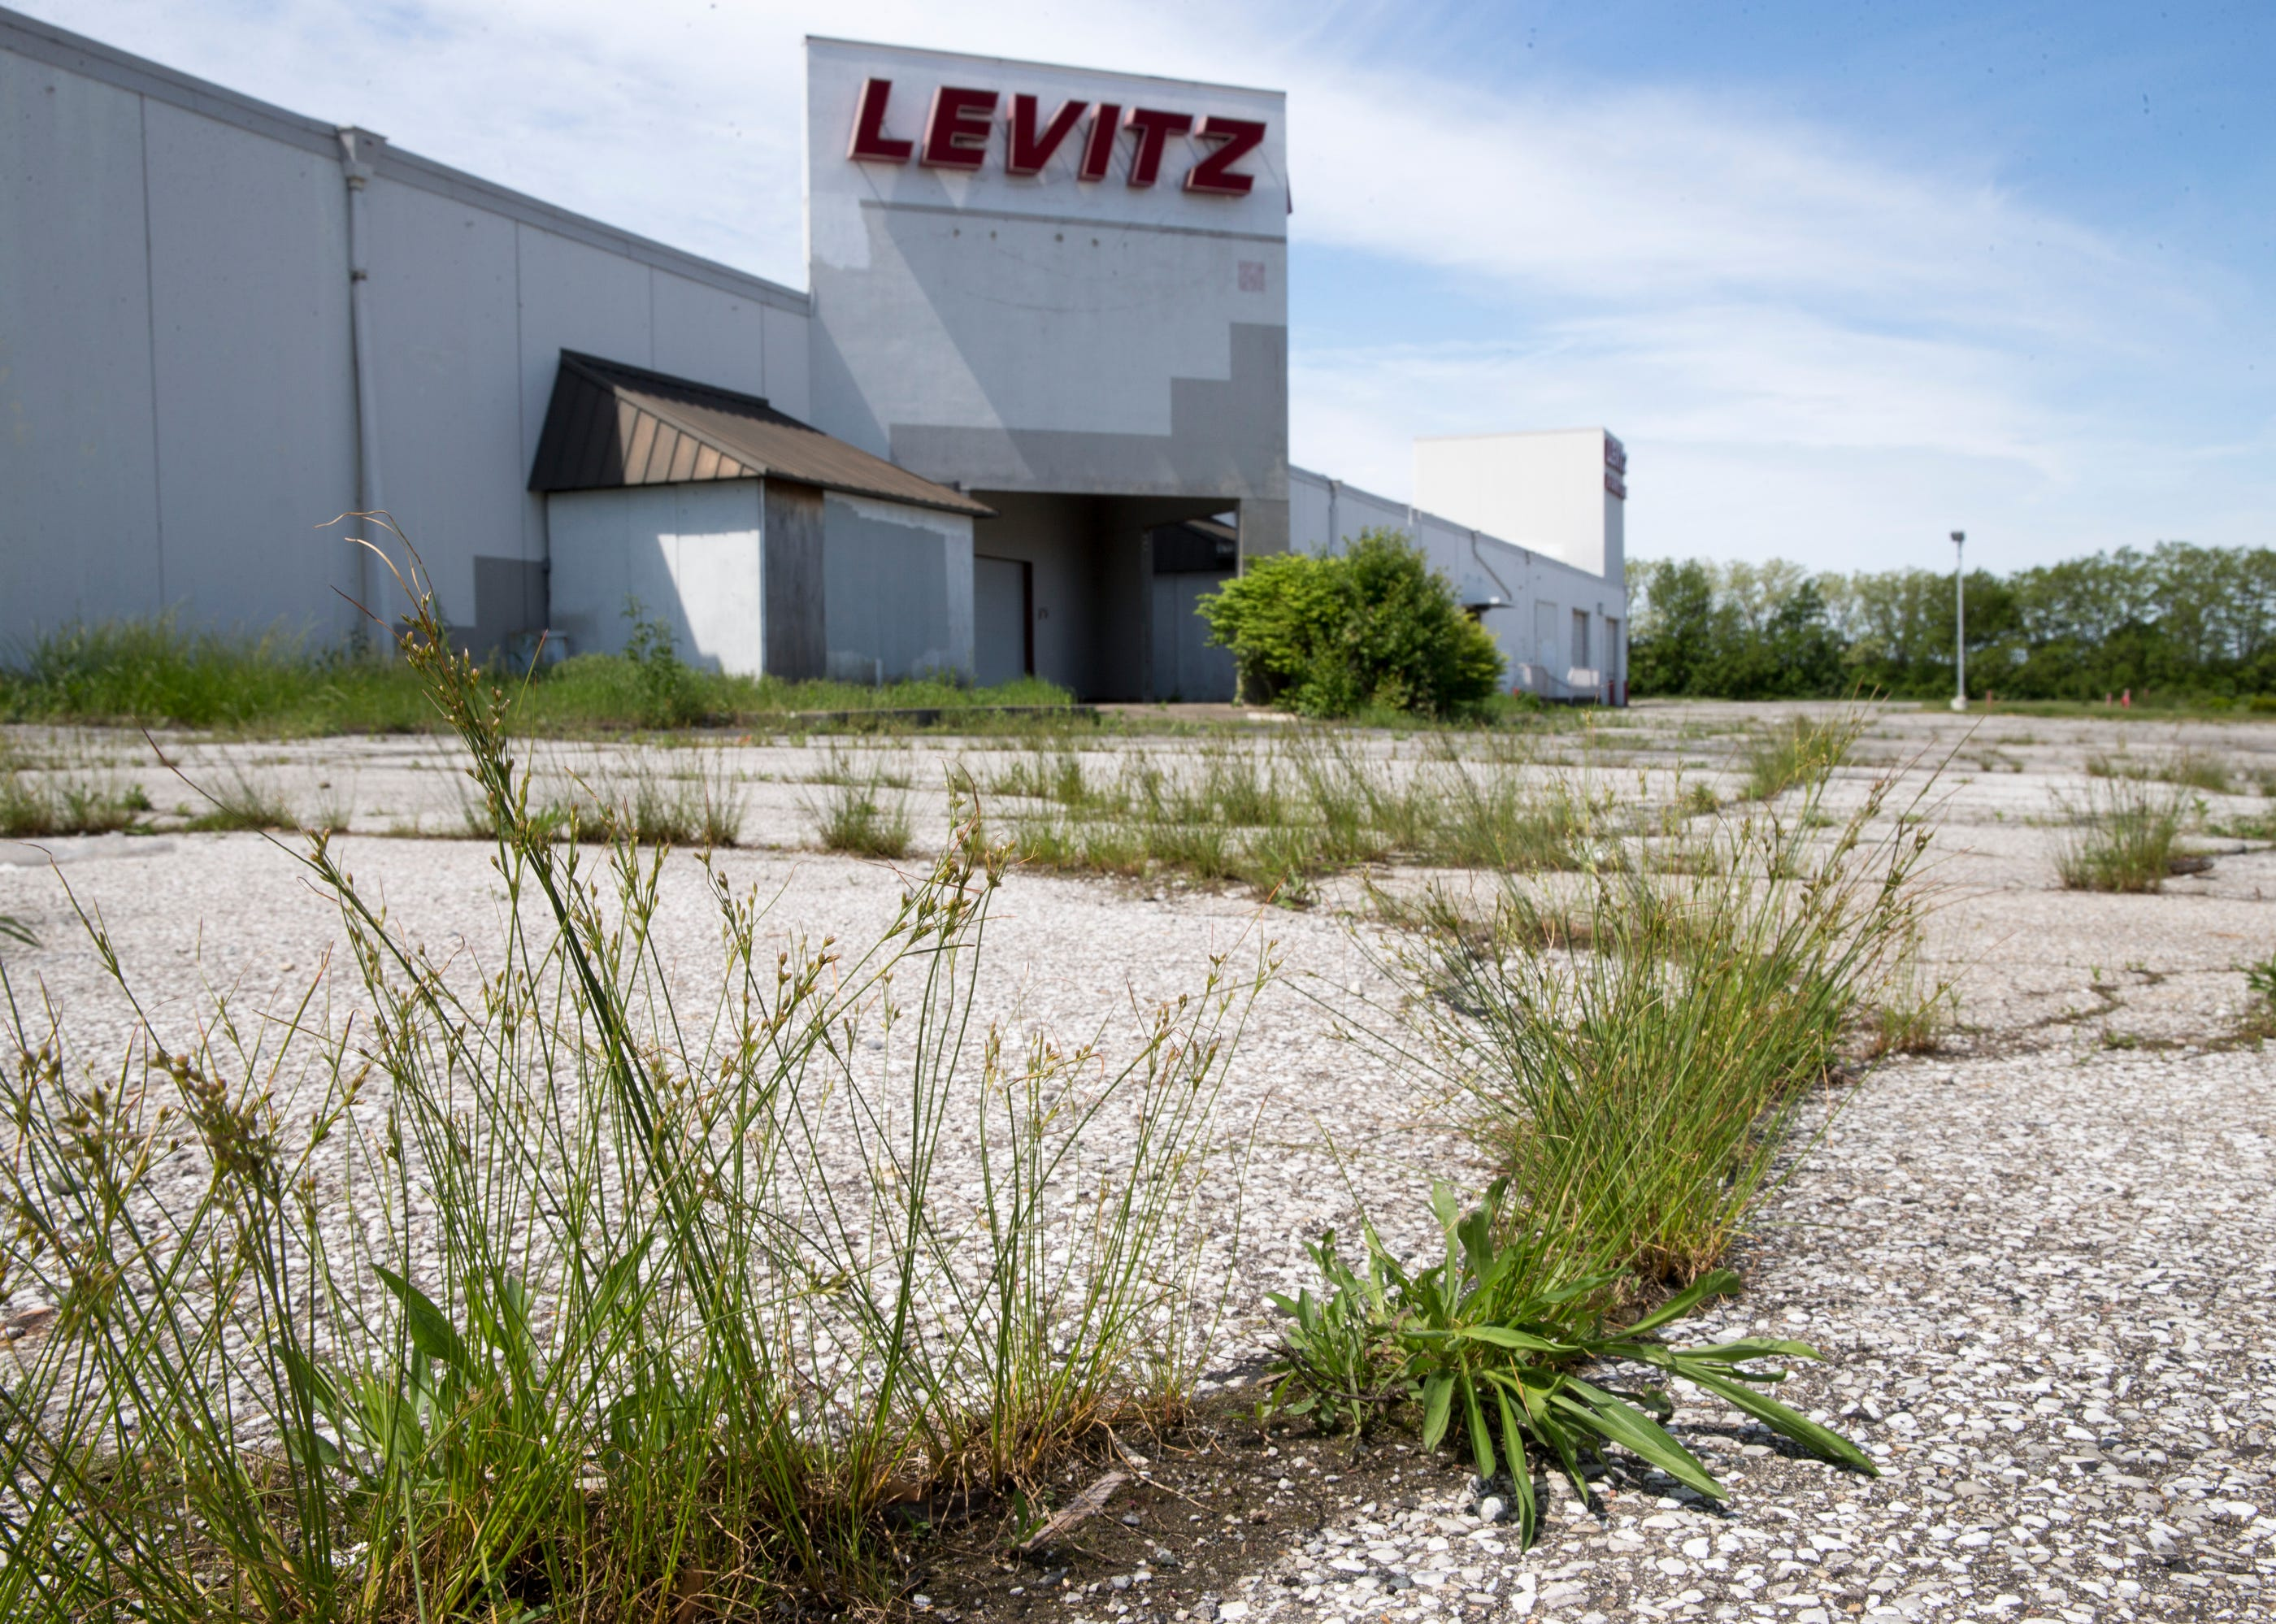 Bon Furniture Retailer RoomPlace Buys Levitz Building, Plans To Hire 120 Workers